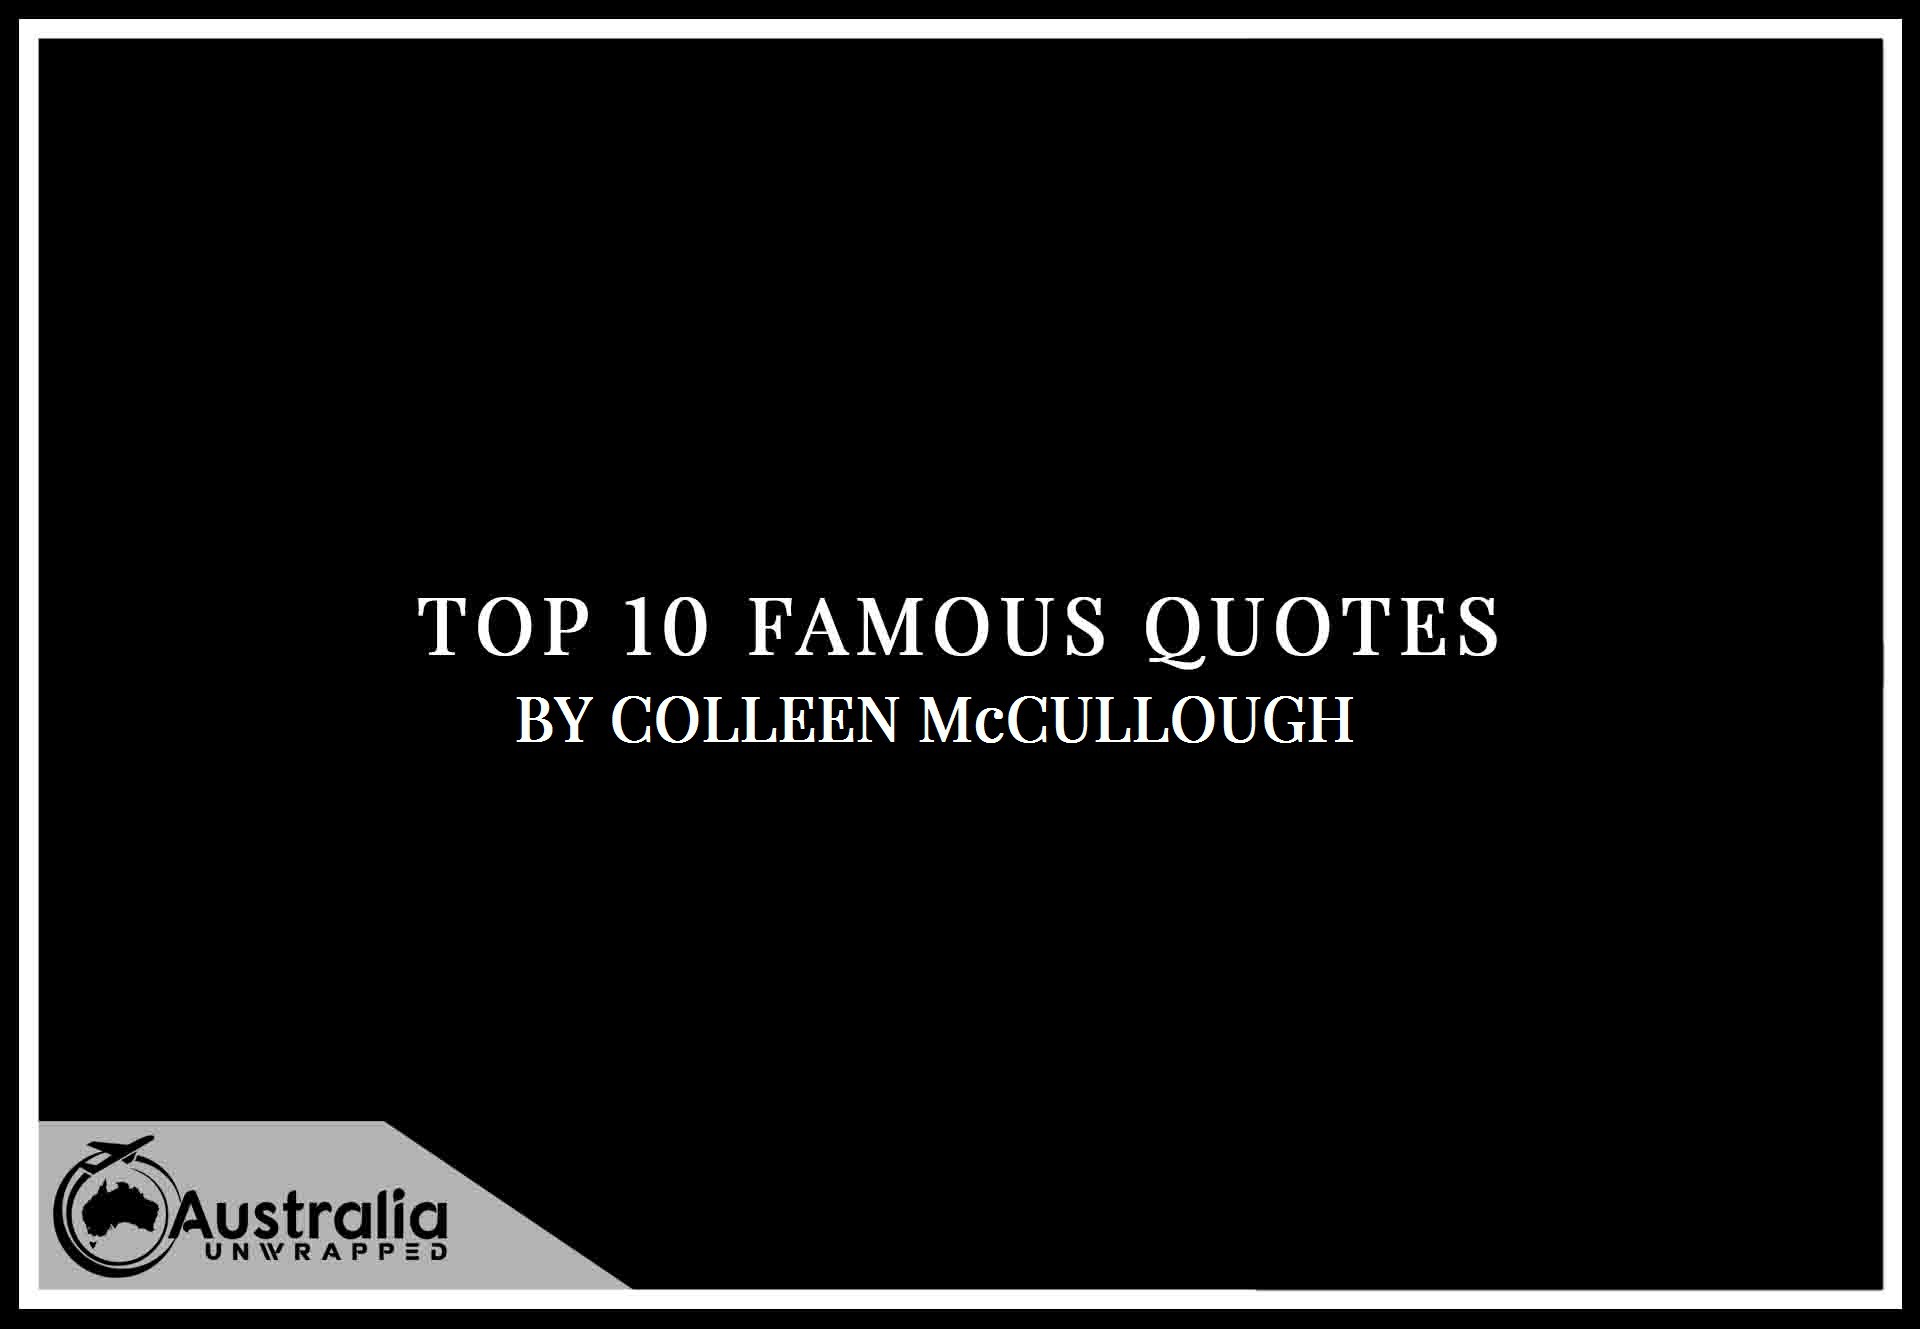 Colleen McCullough's Top 10 Popular and Famous Quotes